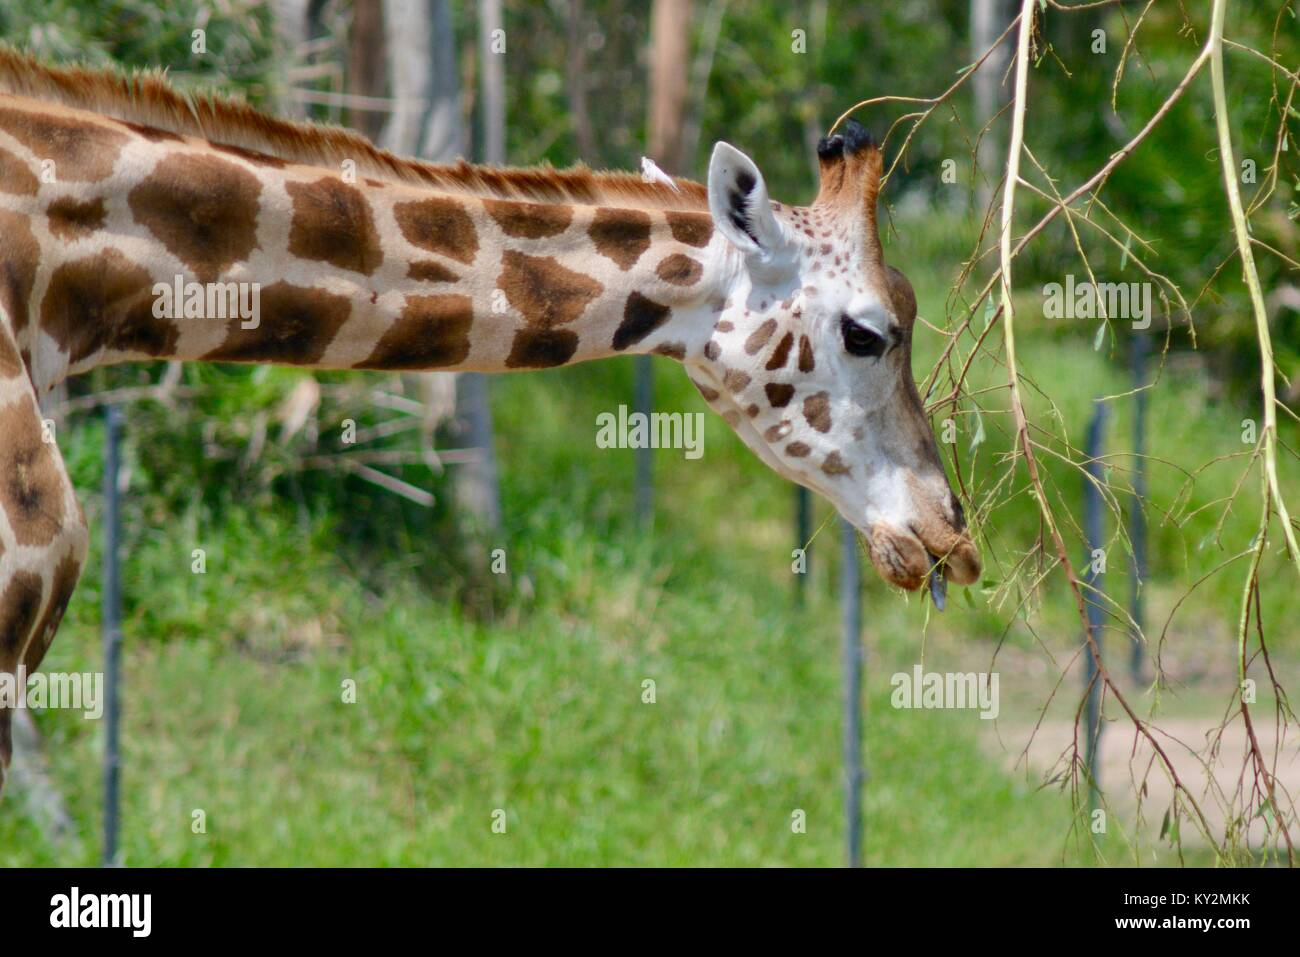 Giraffes standing tall in the grass plains of Australia Zoo, Beerwah, Queensland, Australia - Stock Image